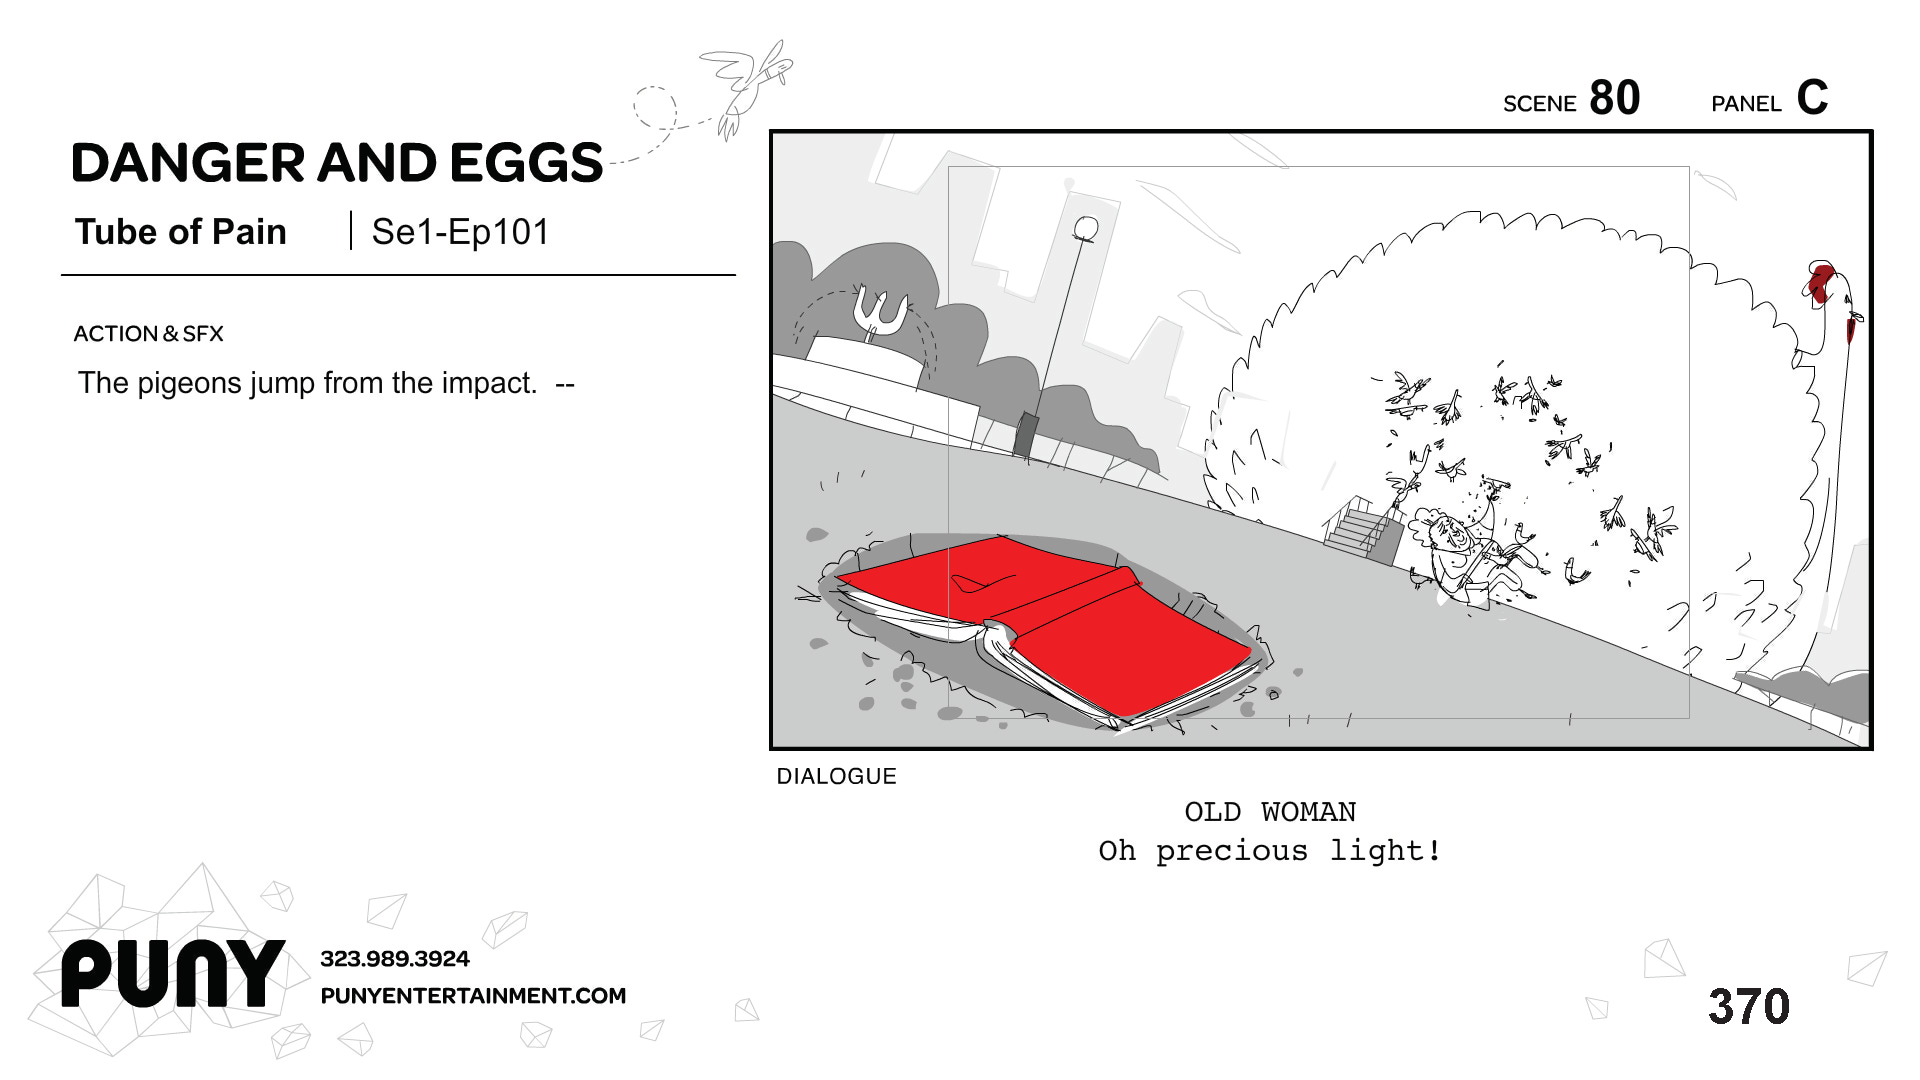 MikeOwens_STORYBOARDS_DangerAndEggs_Page_265.png